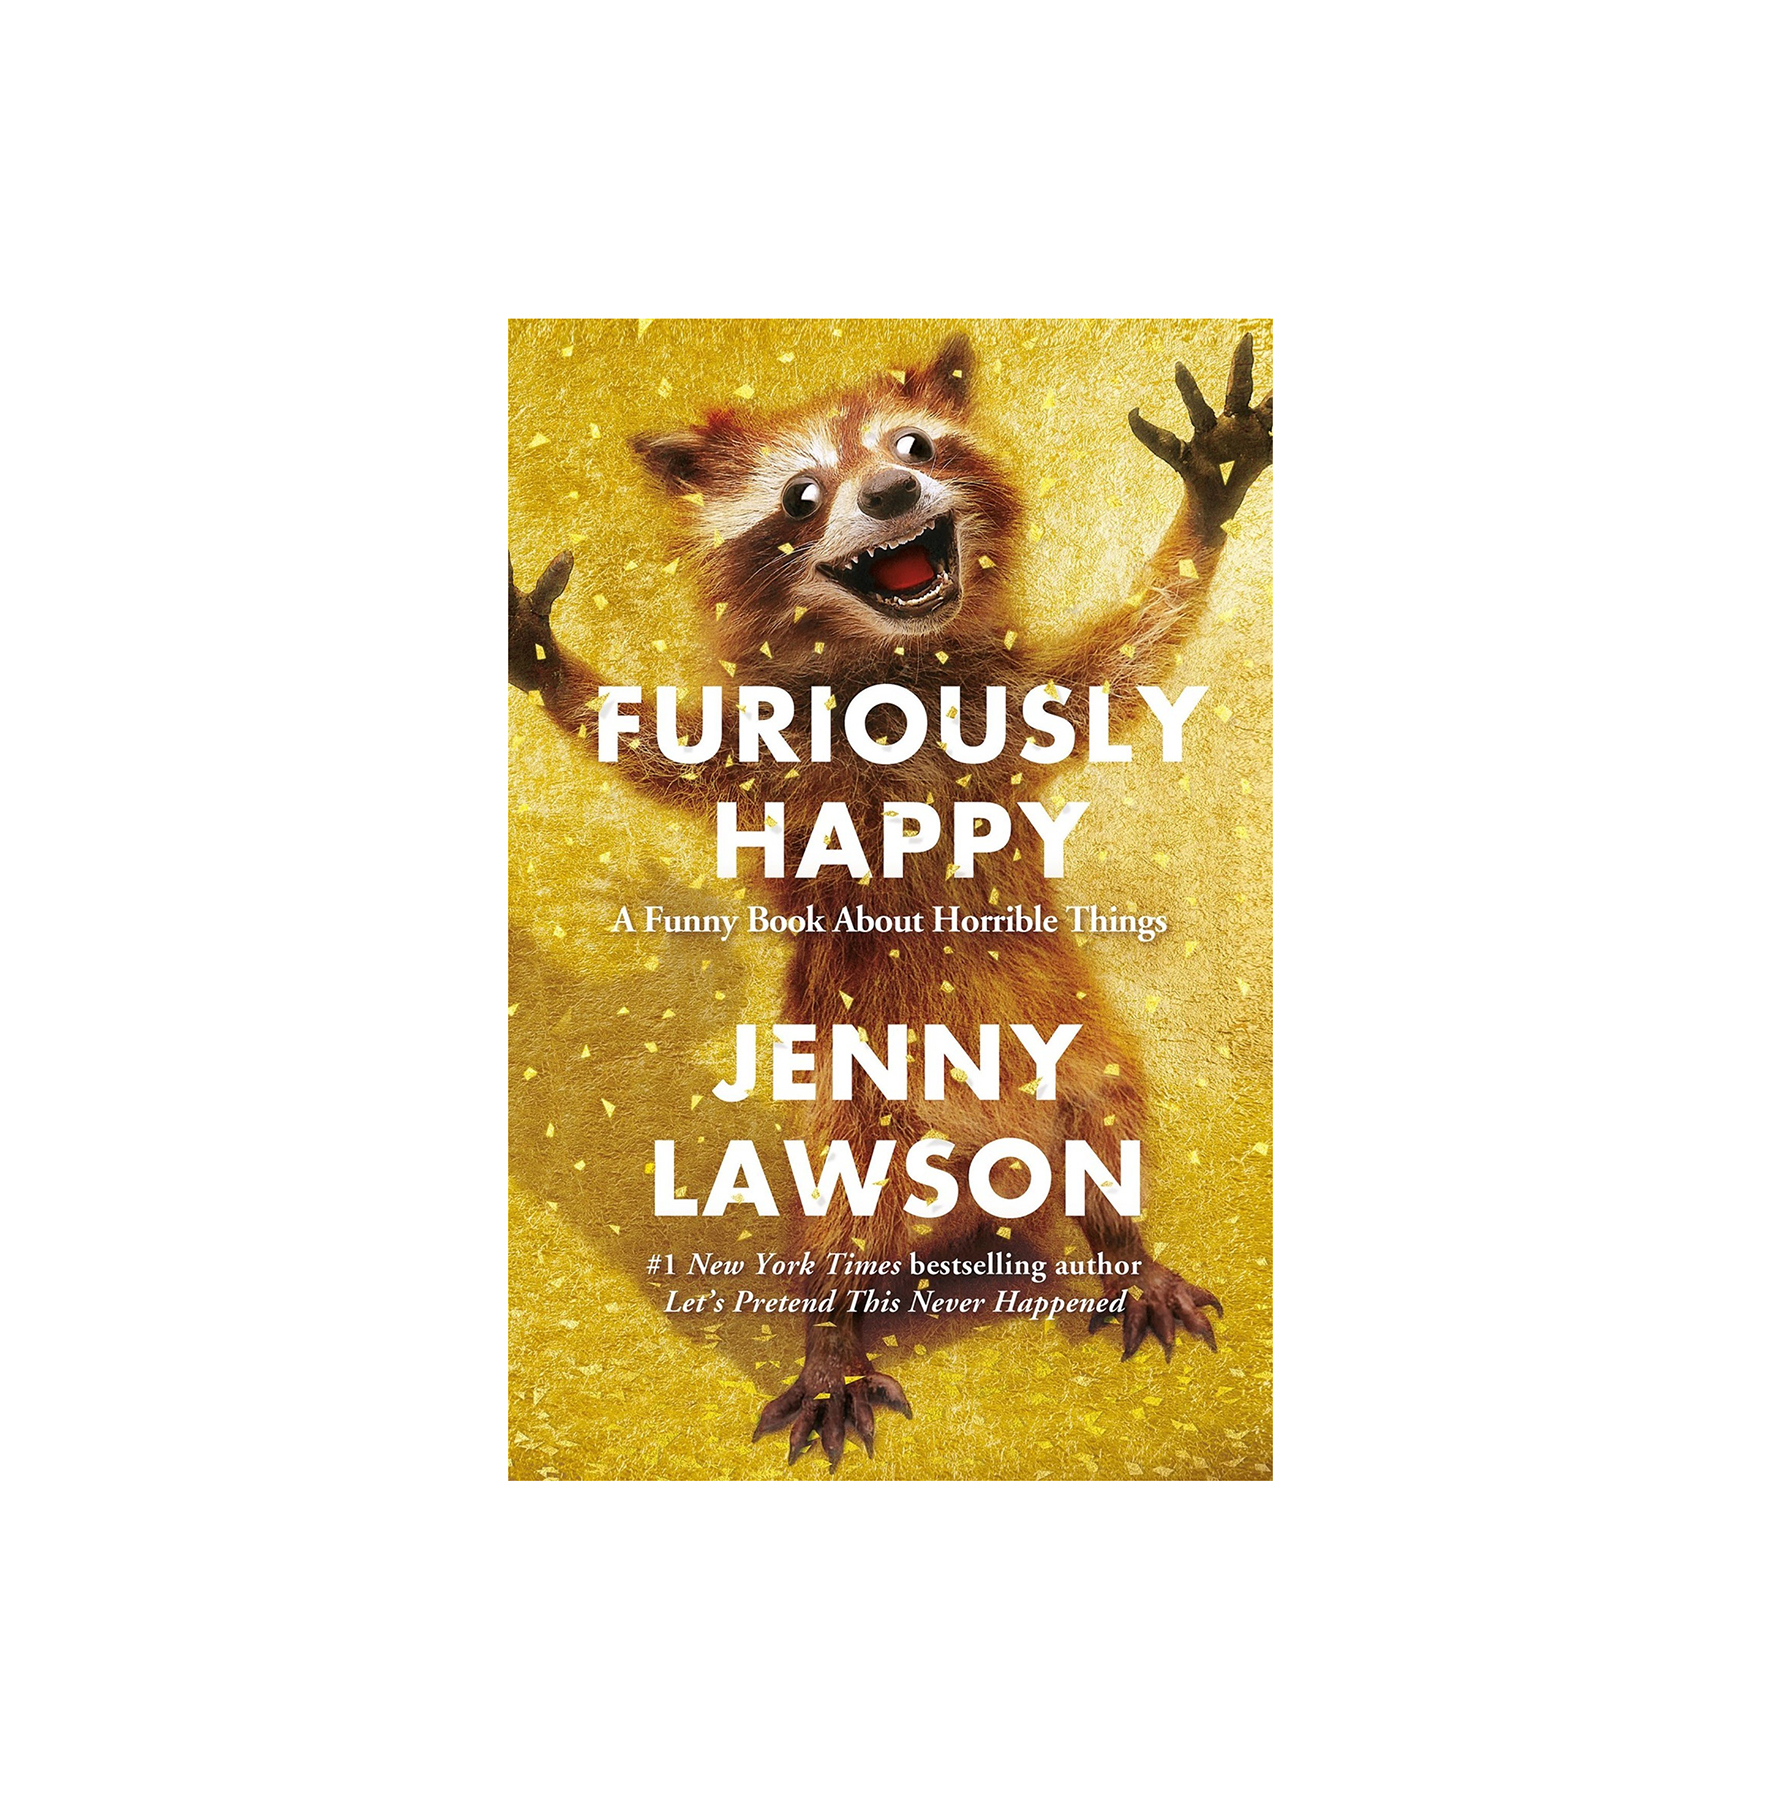 <em>Furiously Happy: A Funny Book About Horrible Things, </em>by Jenny Lawson